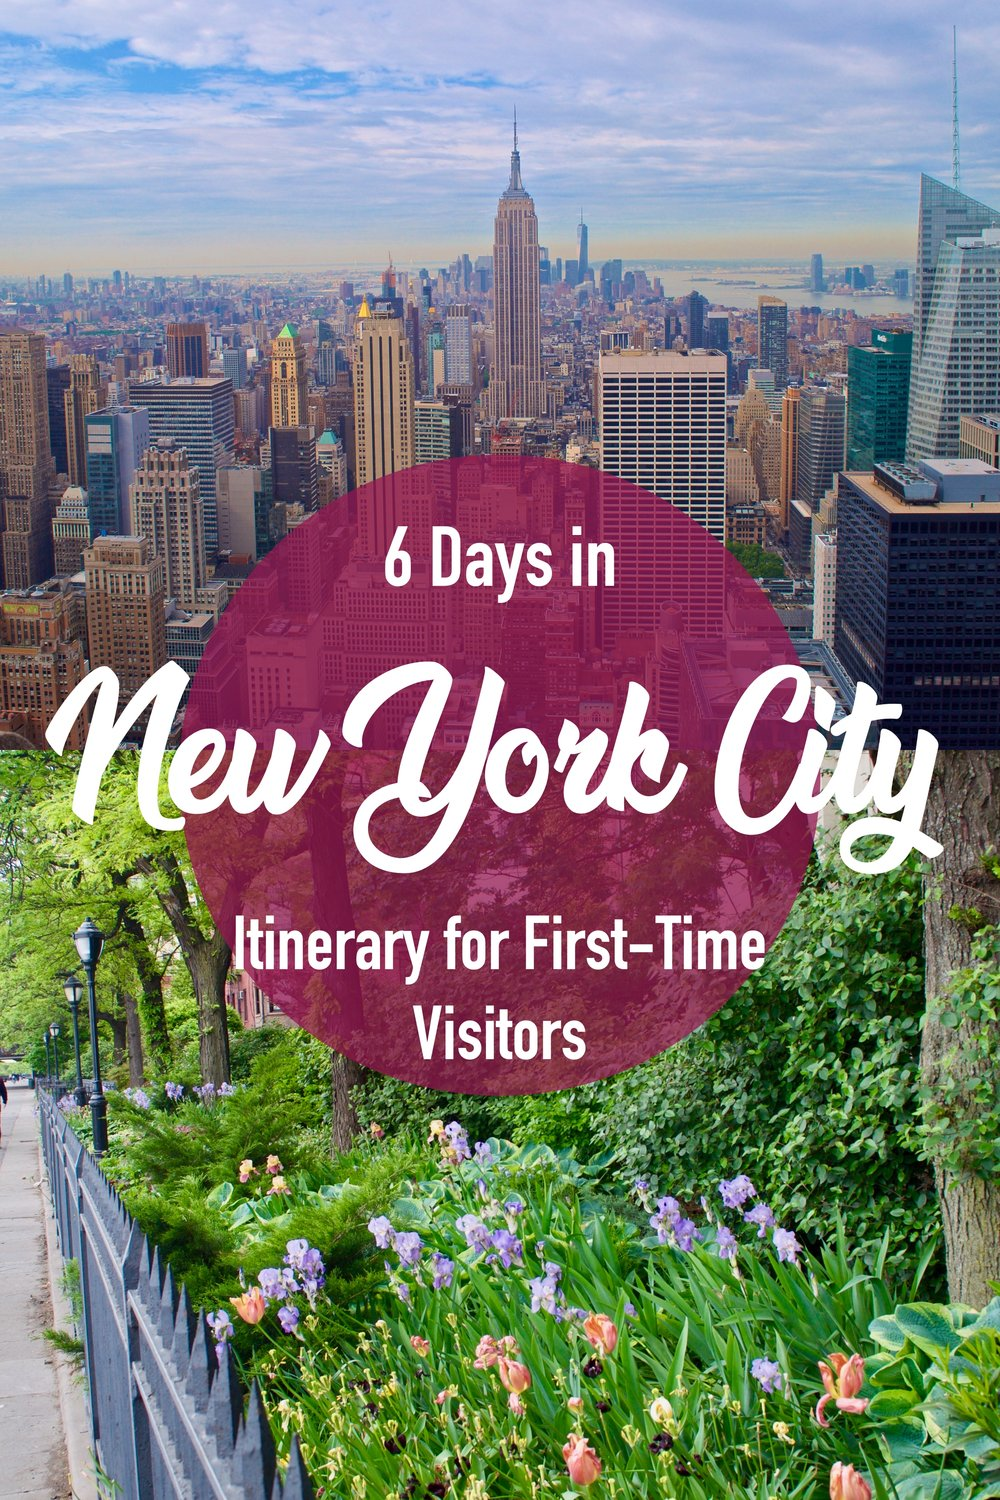 New York City Itinerary for First Time Visitors. 6 Days in New York City. Must See Sights including Central Park, Rockefeller Center, Brooklyn, and the Statue of Liberty #NYC #Newyorkcity #itinerary